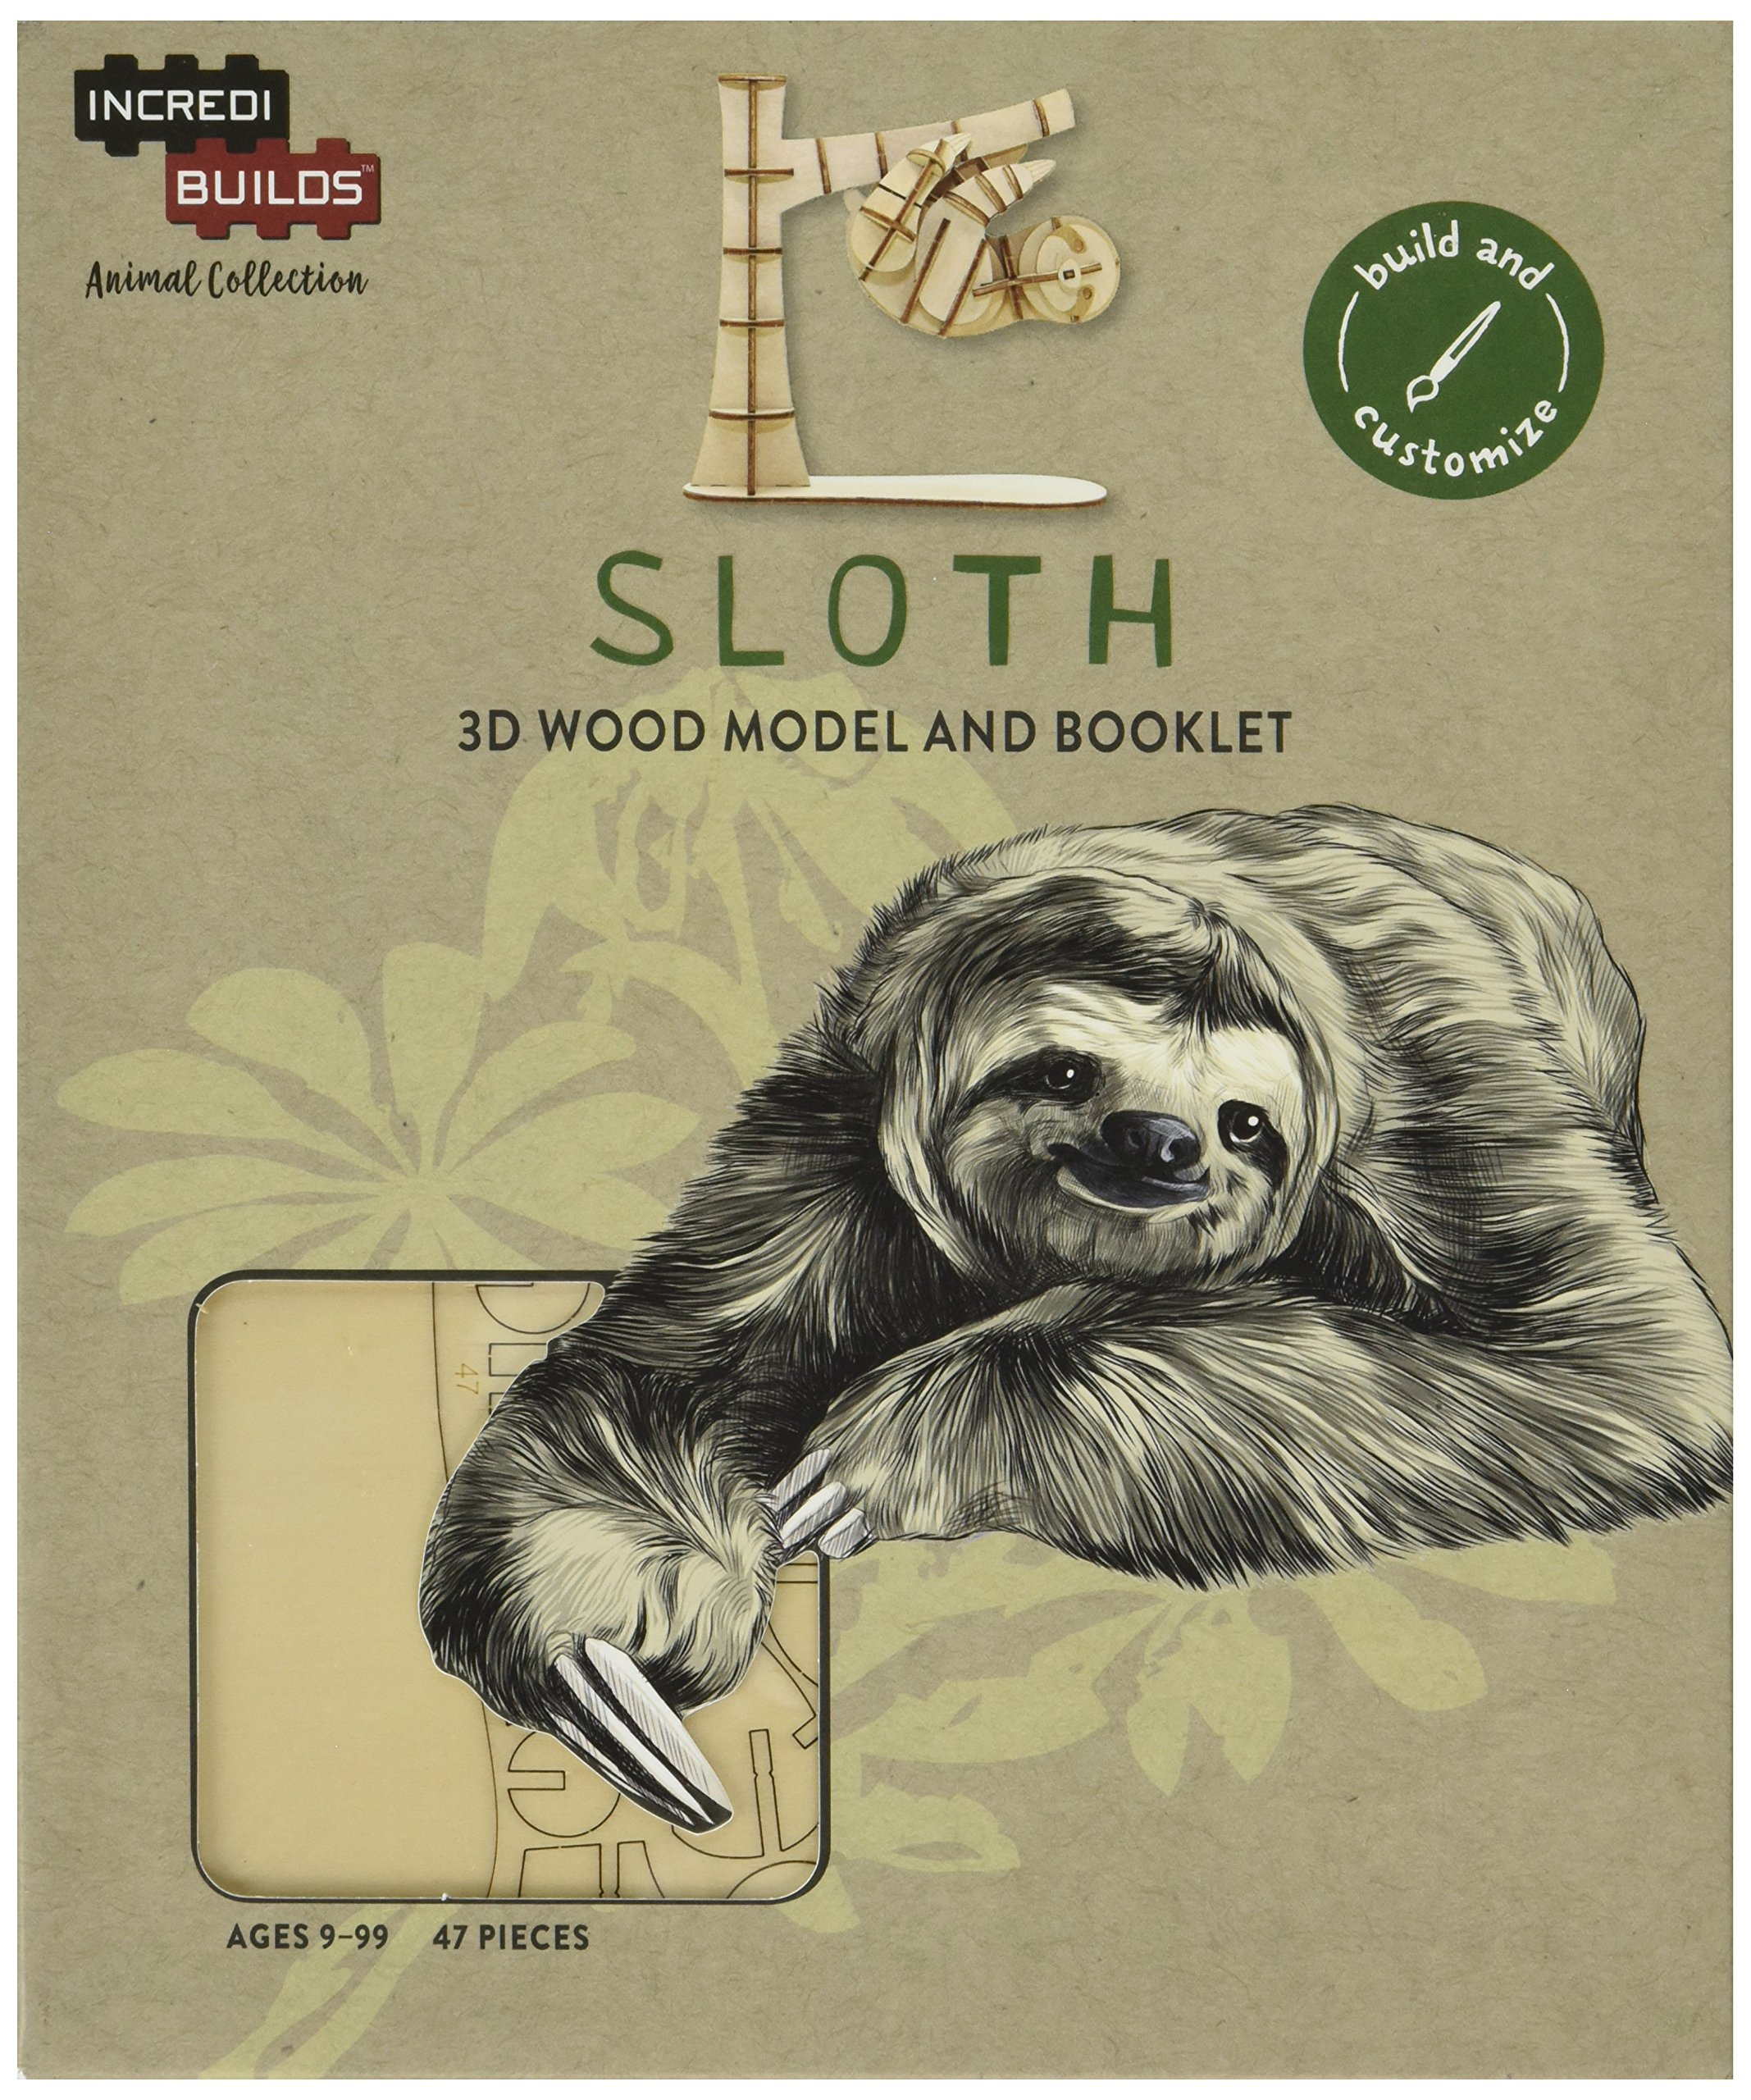 Incredibuilds Animal Collection Sloth 3D Wood Model